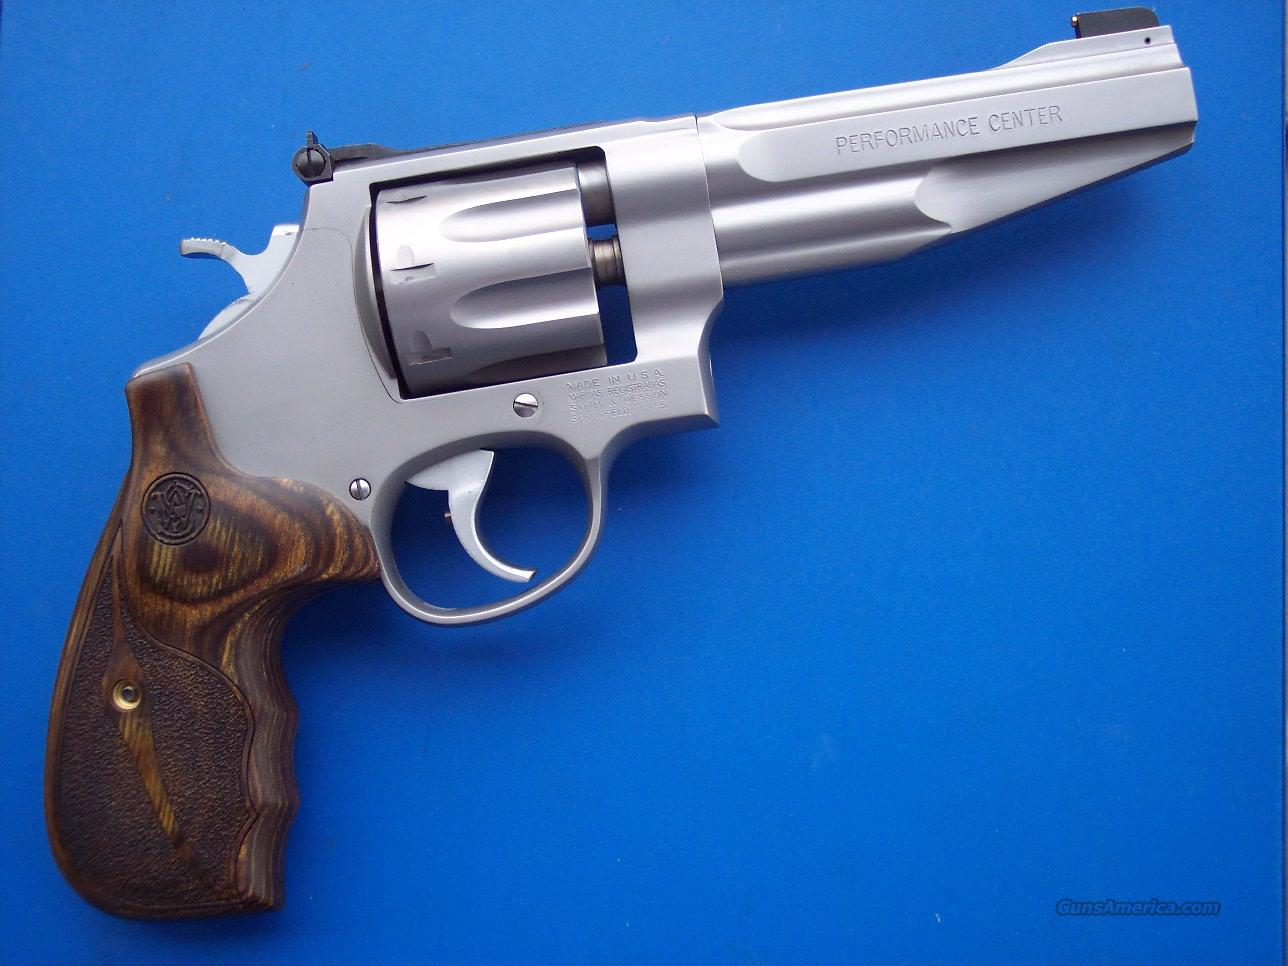 "Smith & Wesson 627 Performance Center 5"" .357 Mag 8 Shot Moon Clip SKU 170210 *NEW* S&W   Guns > Pistols > Smith & Wesson Revolvers > Performance Center"